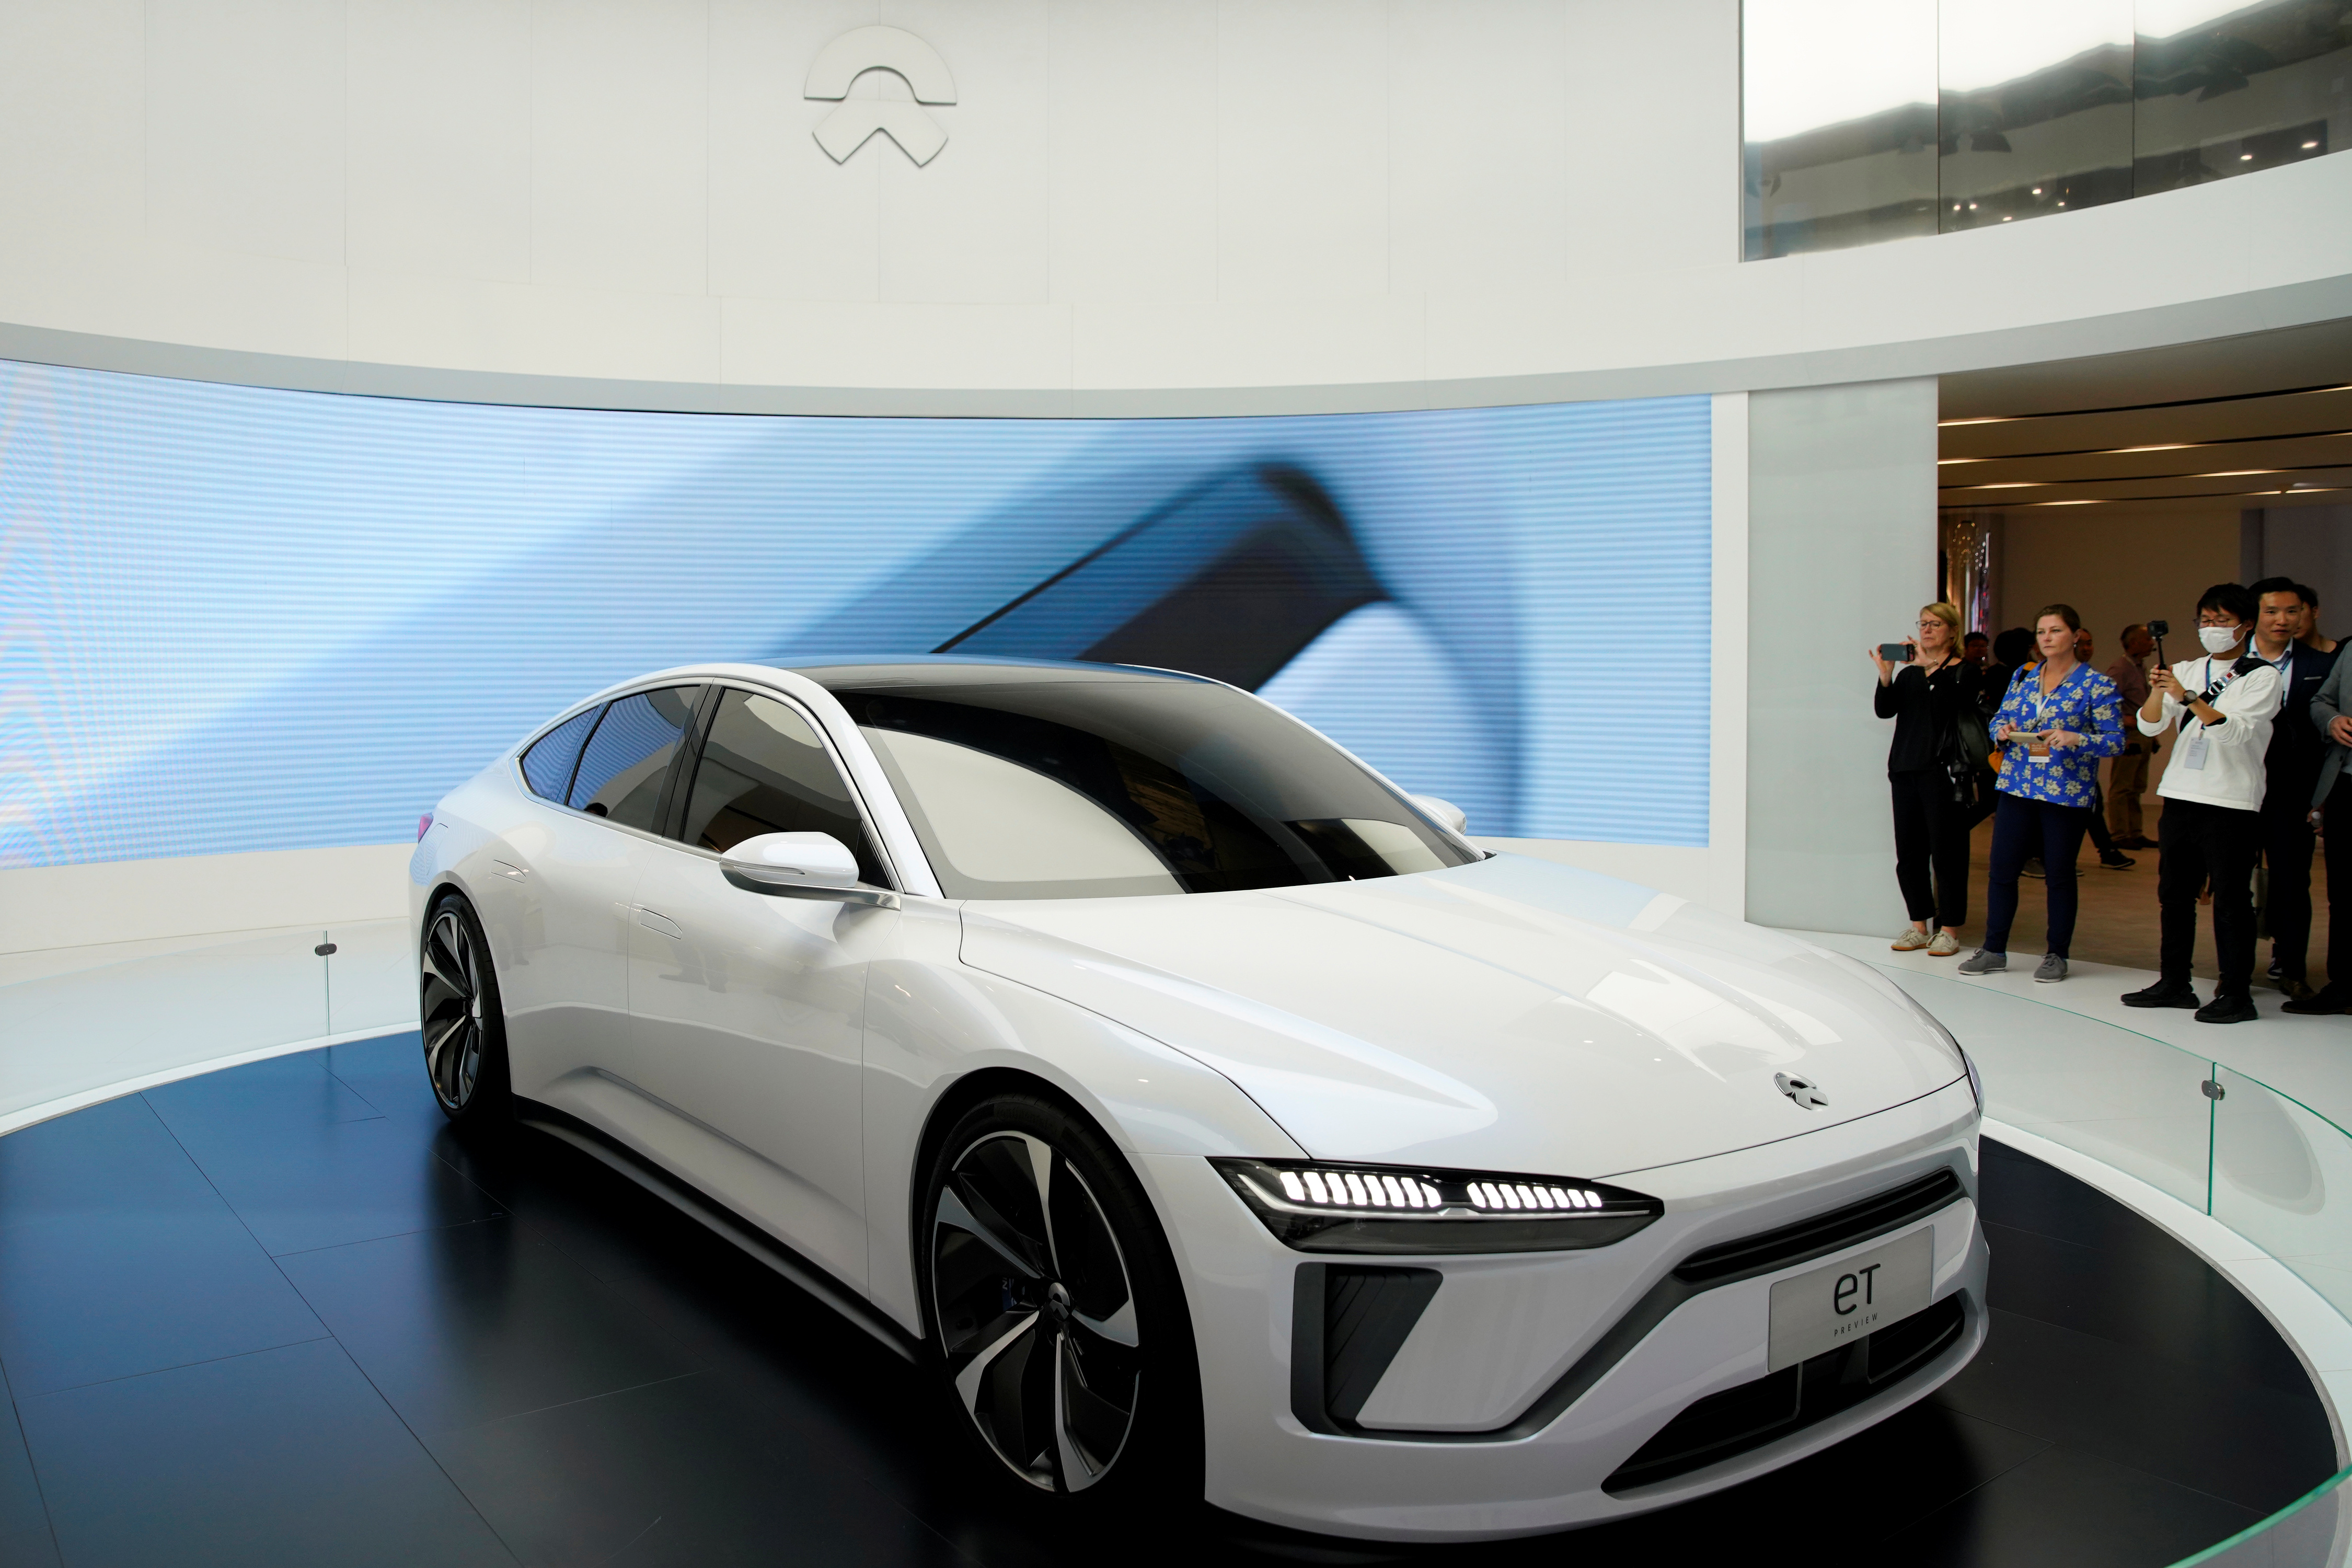 NIO's new electric vehicle (EV) ET7 is unveiled during the media day for Shanghai auto show in Shanghai, China April 16, 2019.